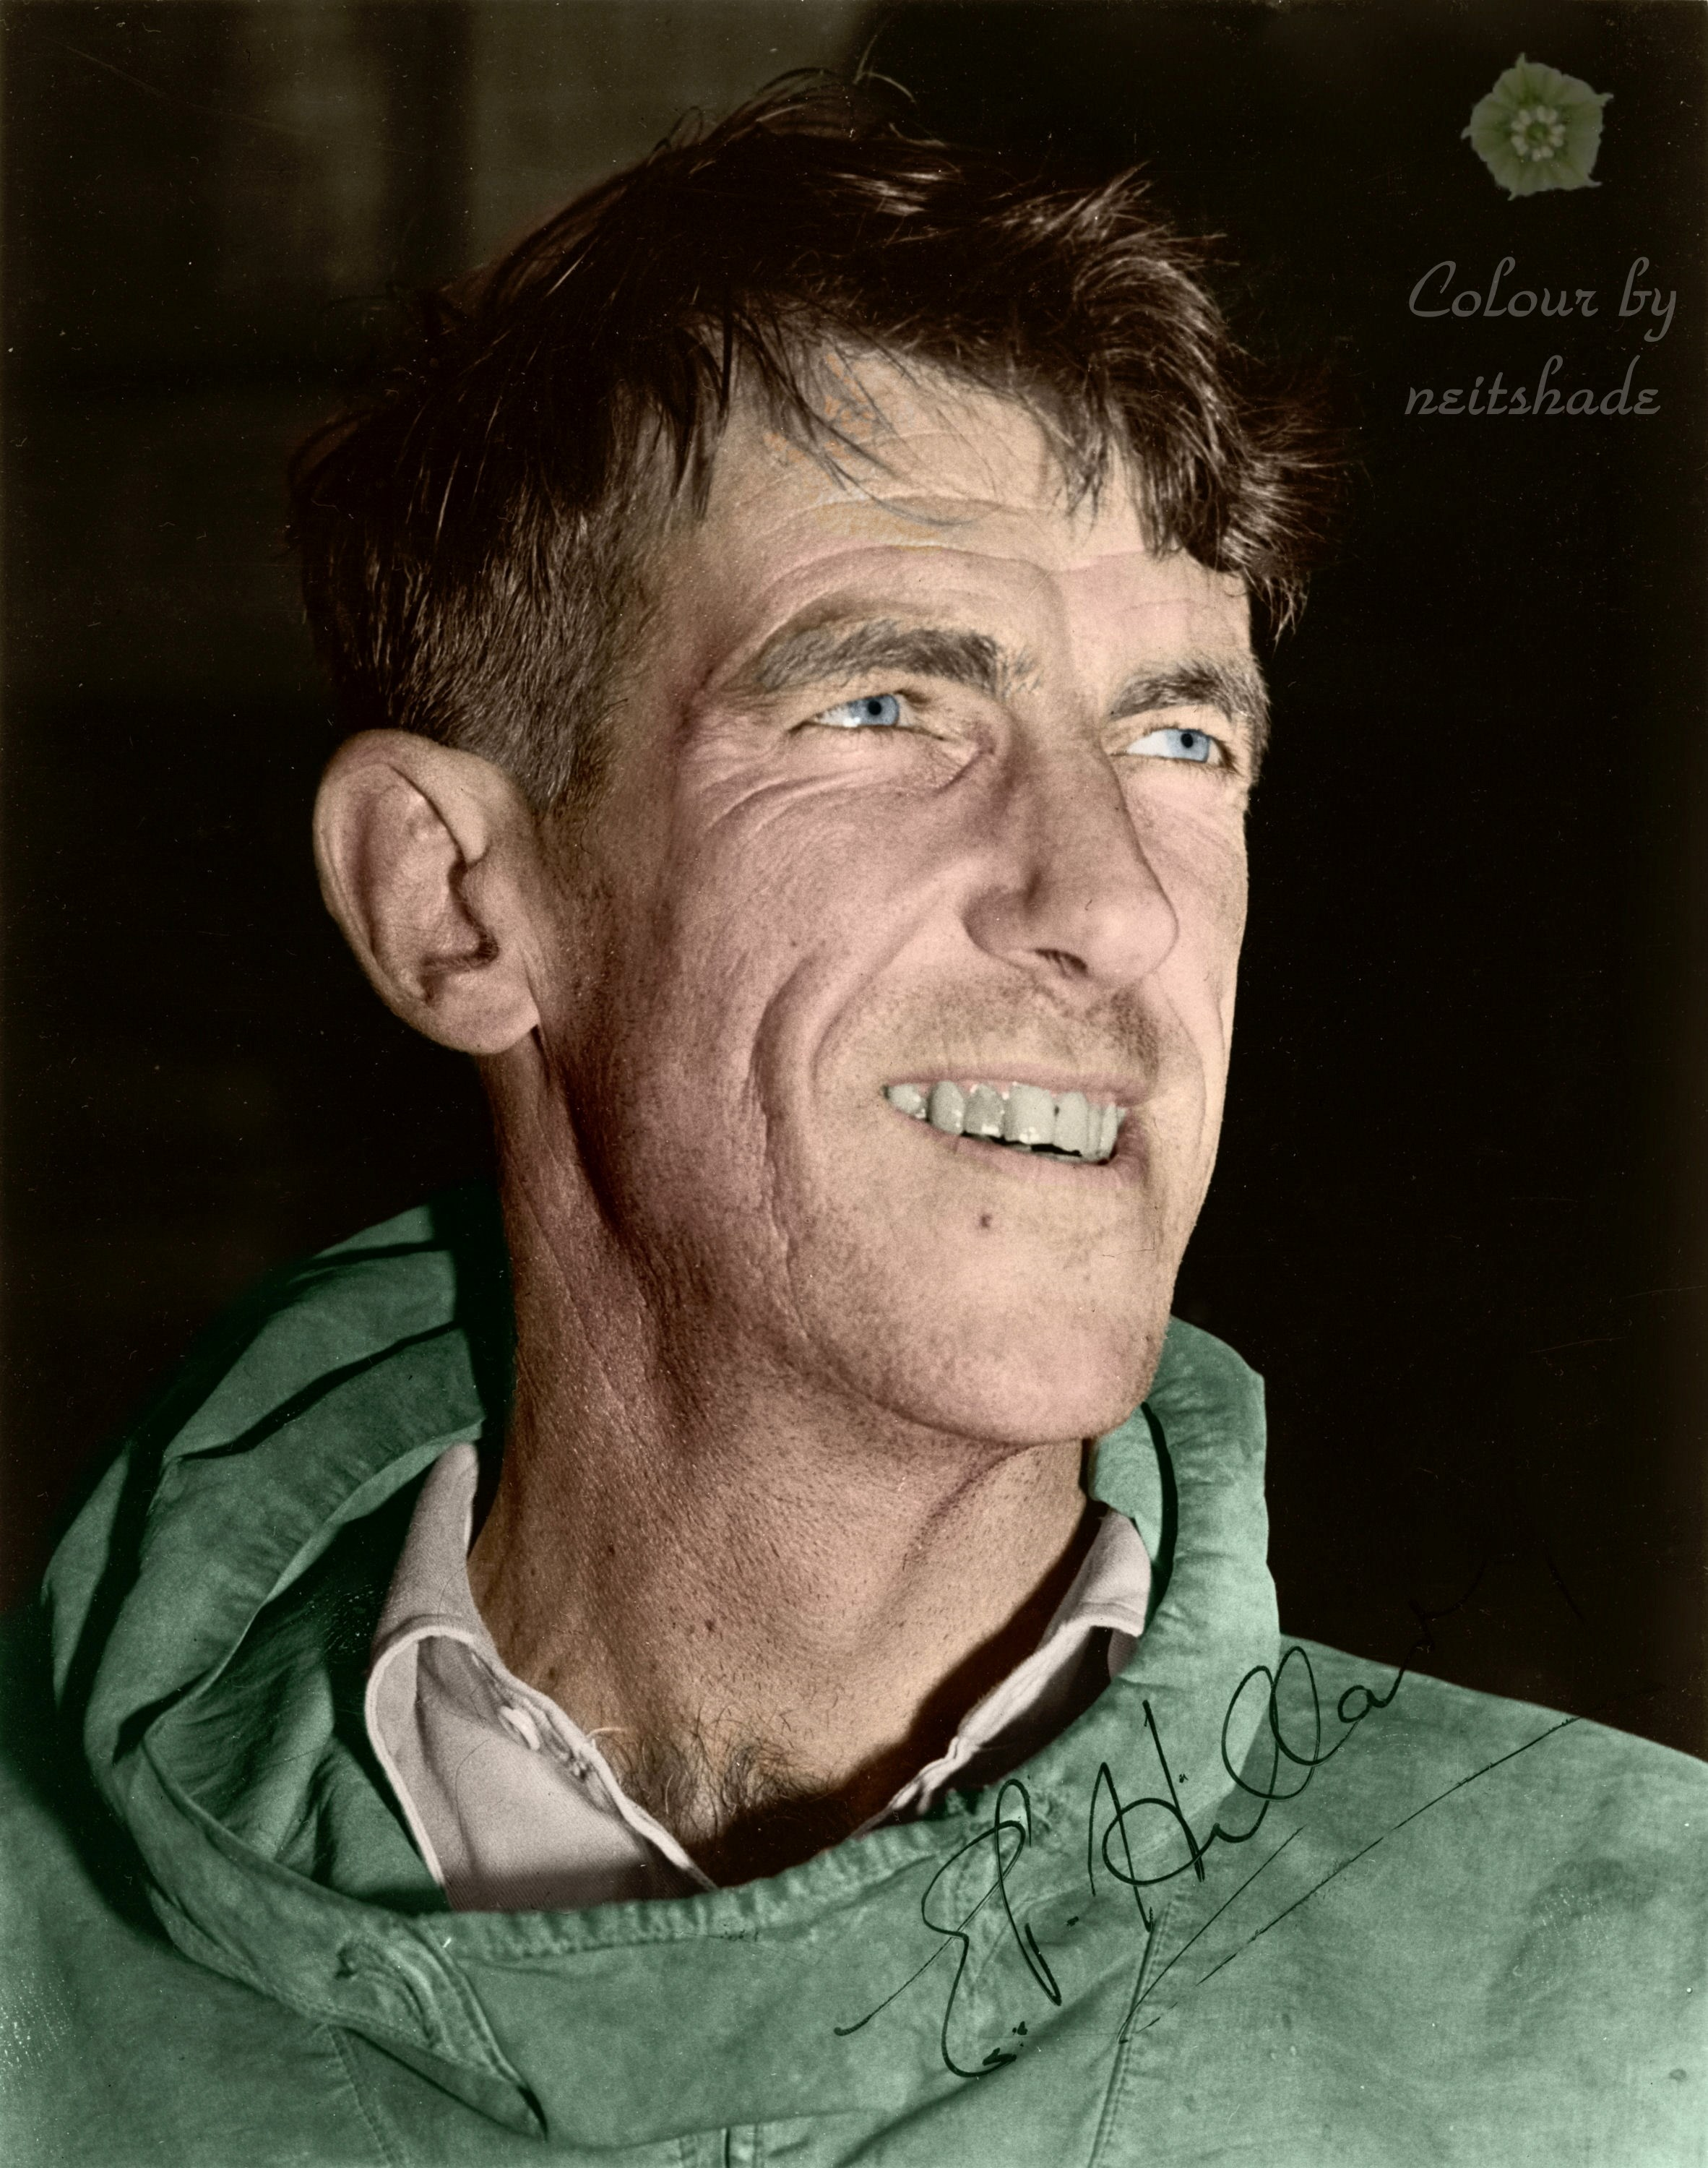 sir edmund hillary Edmund hillary, self: the conquest of everest edmund hillary was born on july 20, 1919 in tuakau, auckland, new zealand as edmund percival hillary he was married to june mulgrew and louise mary rose.